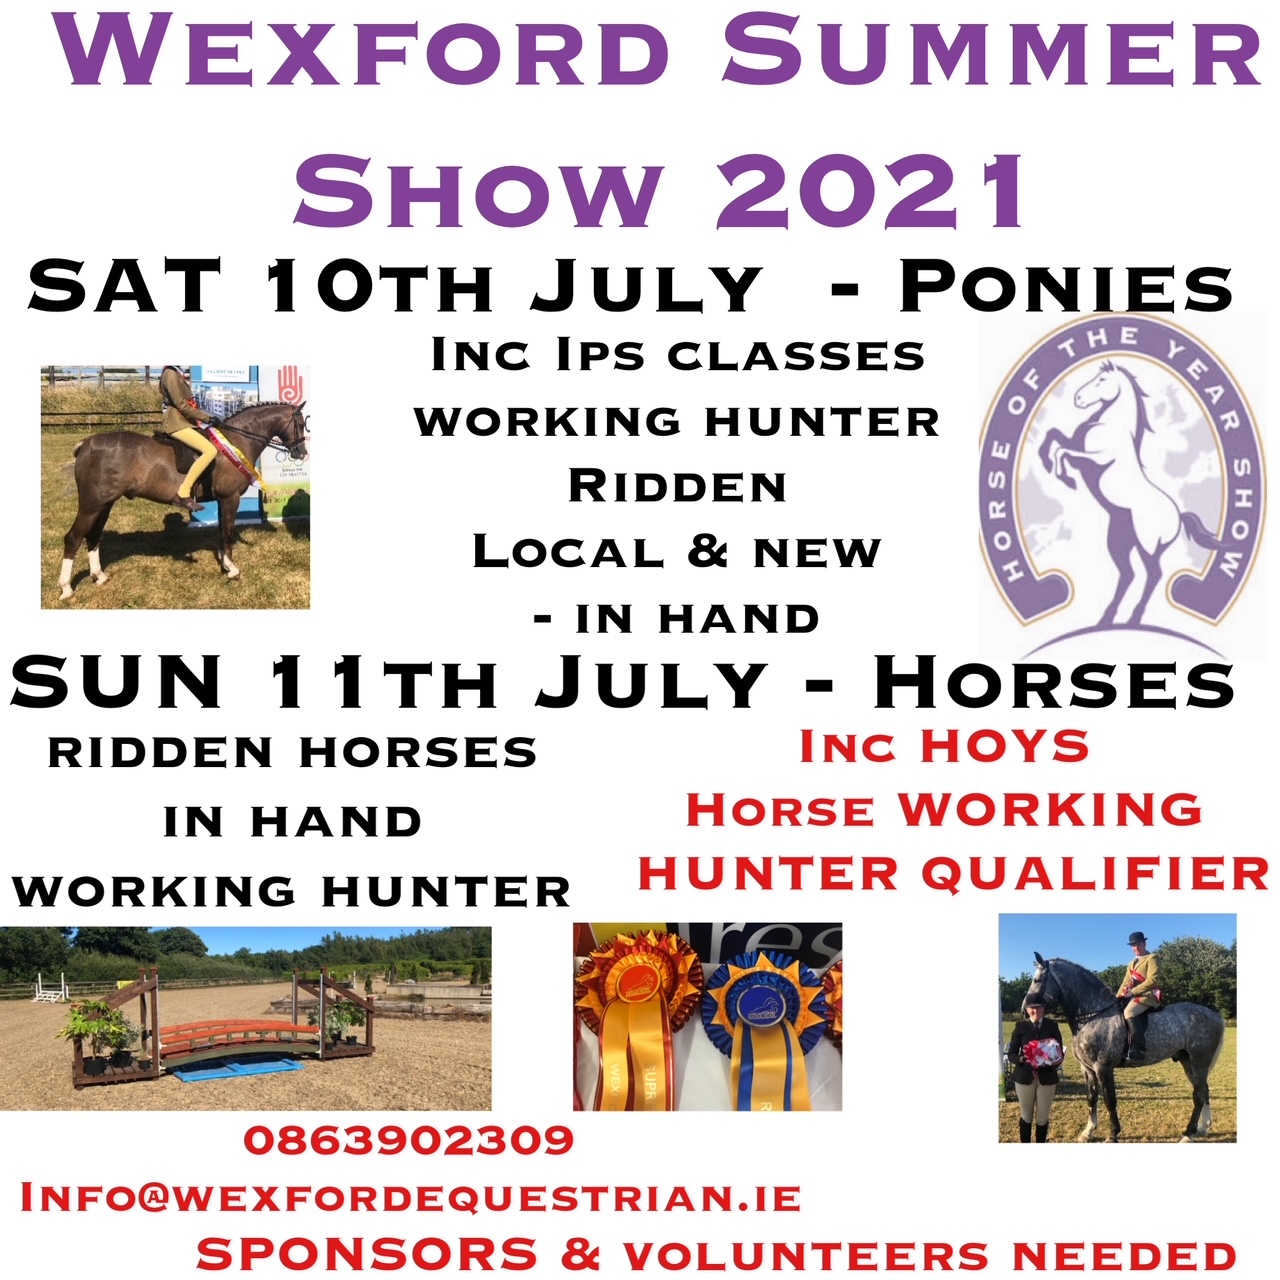 WEXFORD EC SUMMER HORSE SHOW WITH HOYS WORKING HUNTER QUALIFIERS SUN 11TH JULY